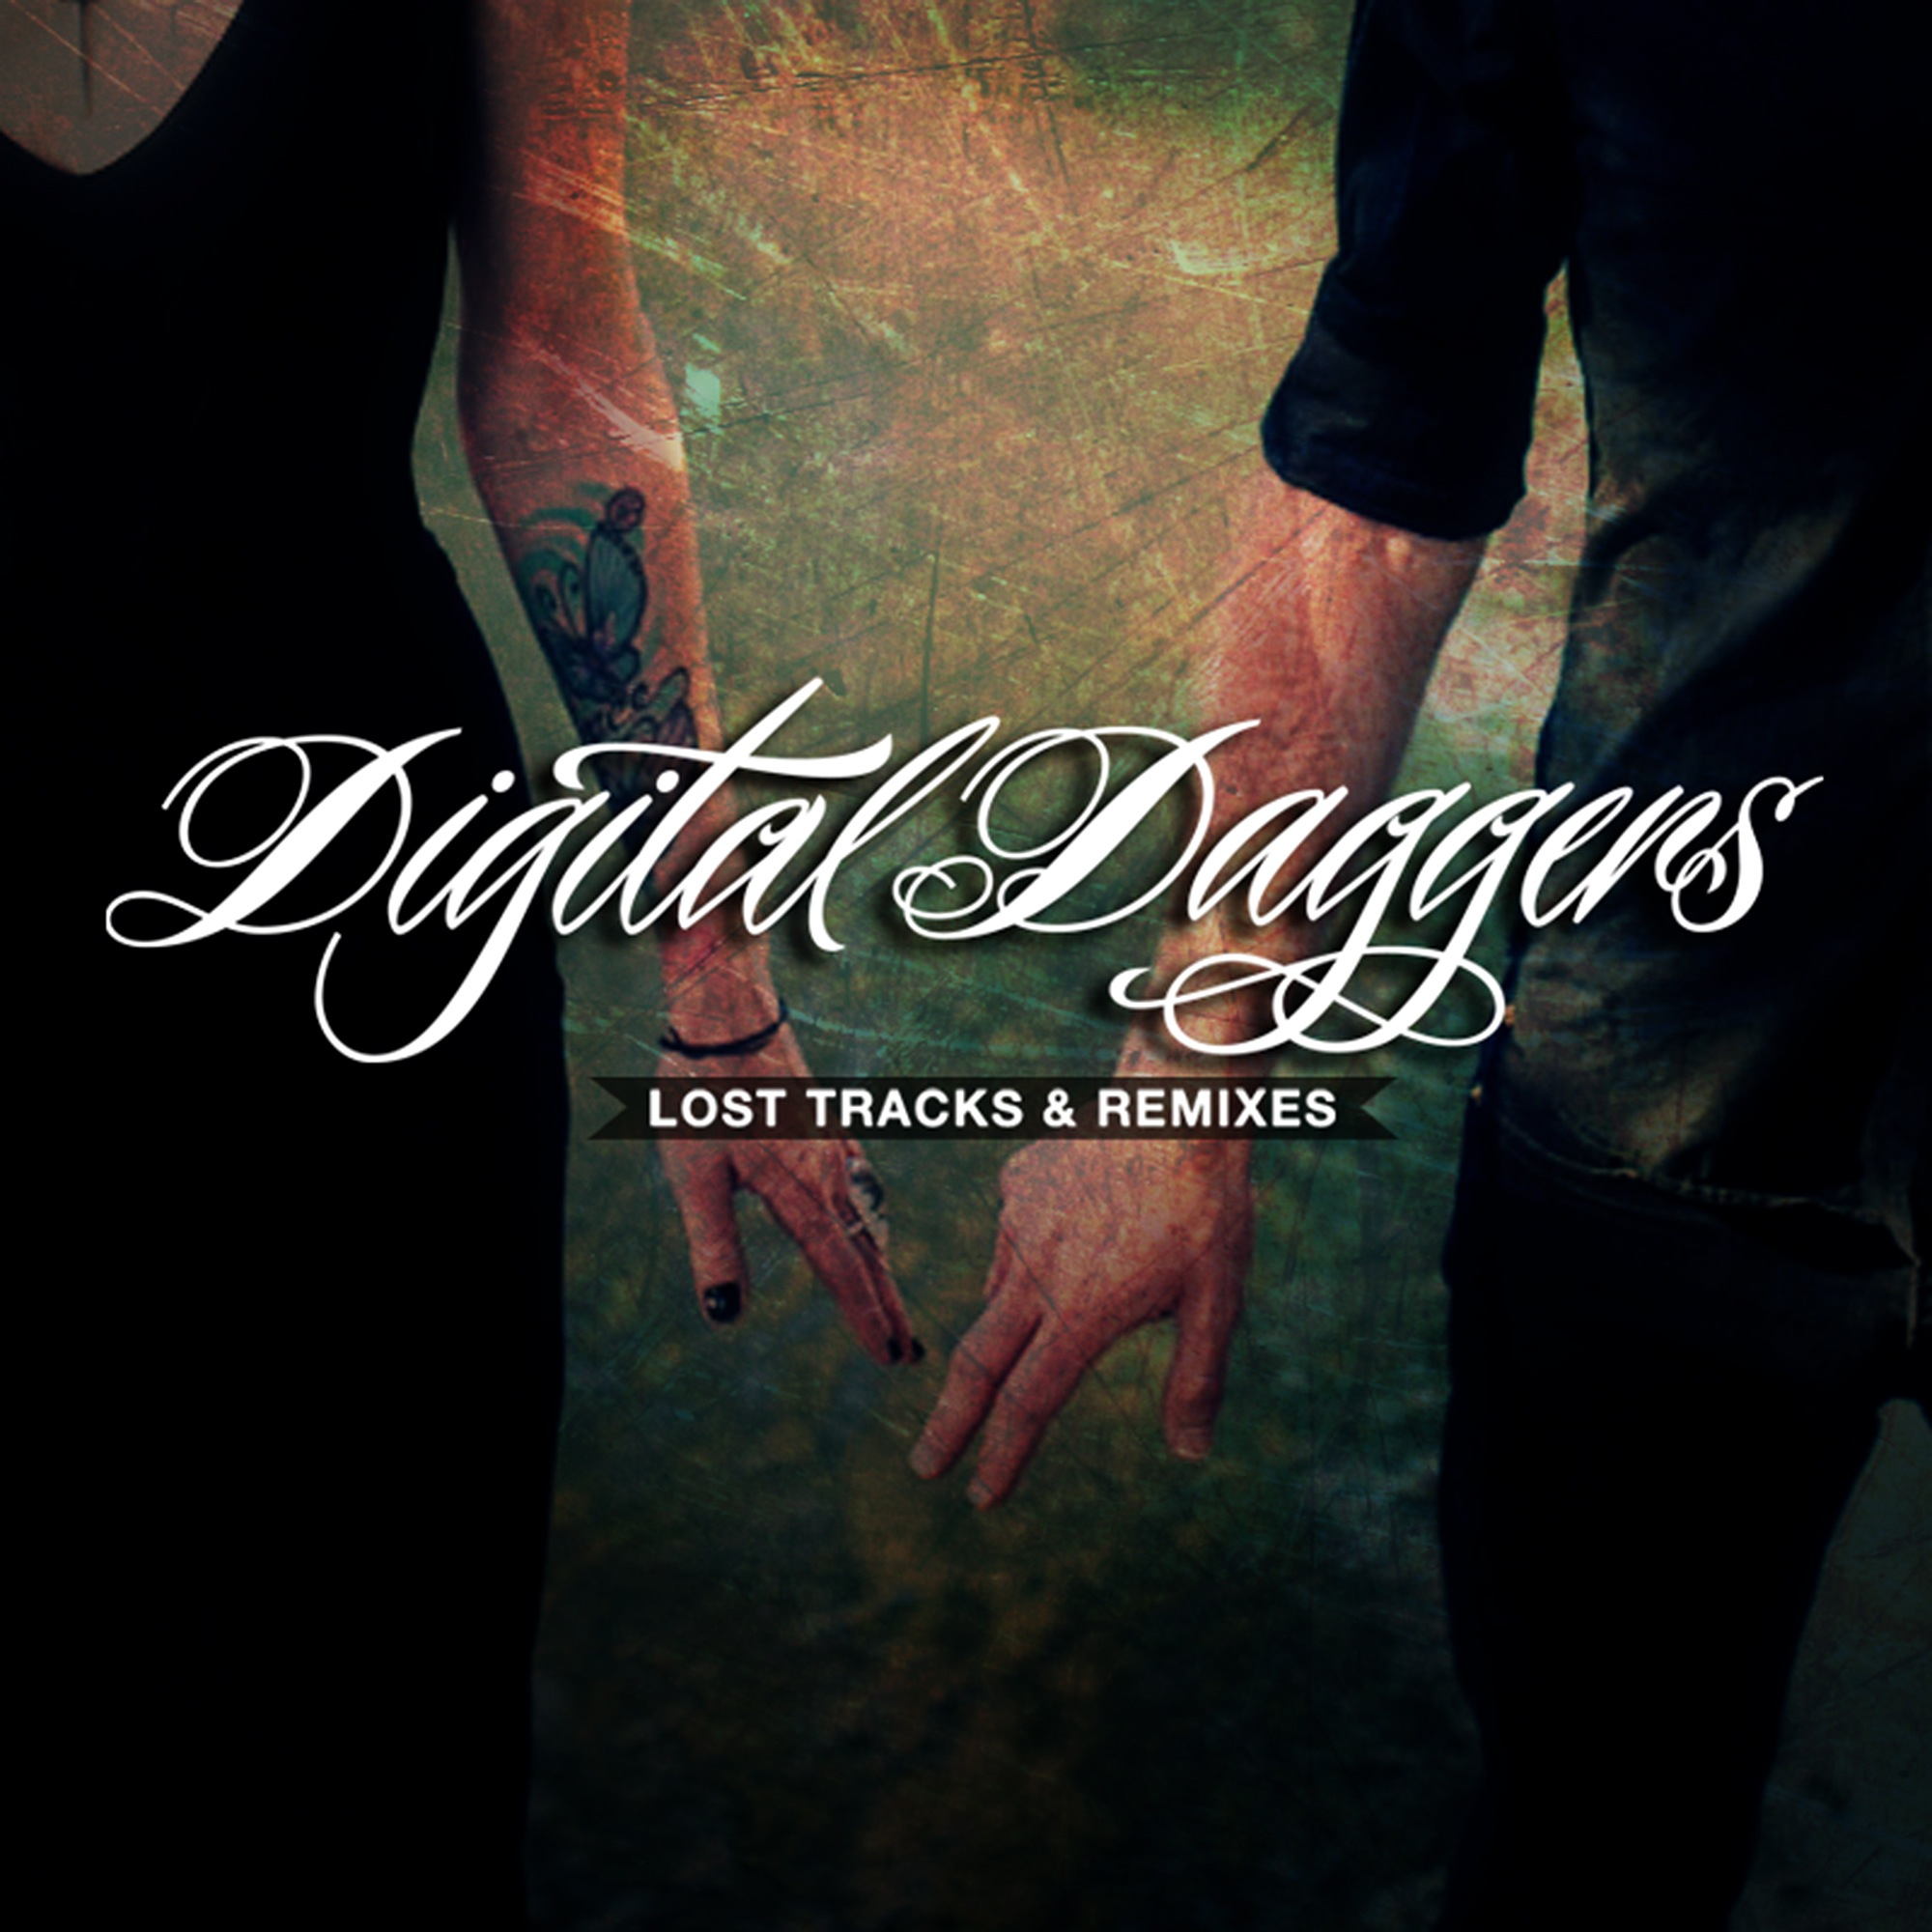 Digital Daggers Logo Digital Daggers Lost Tracks